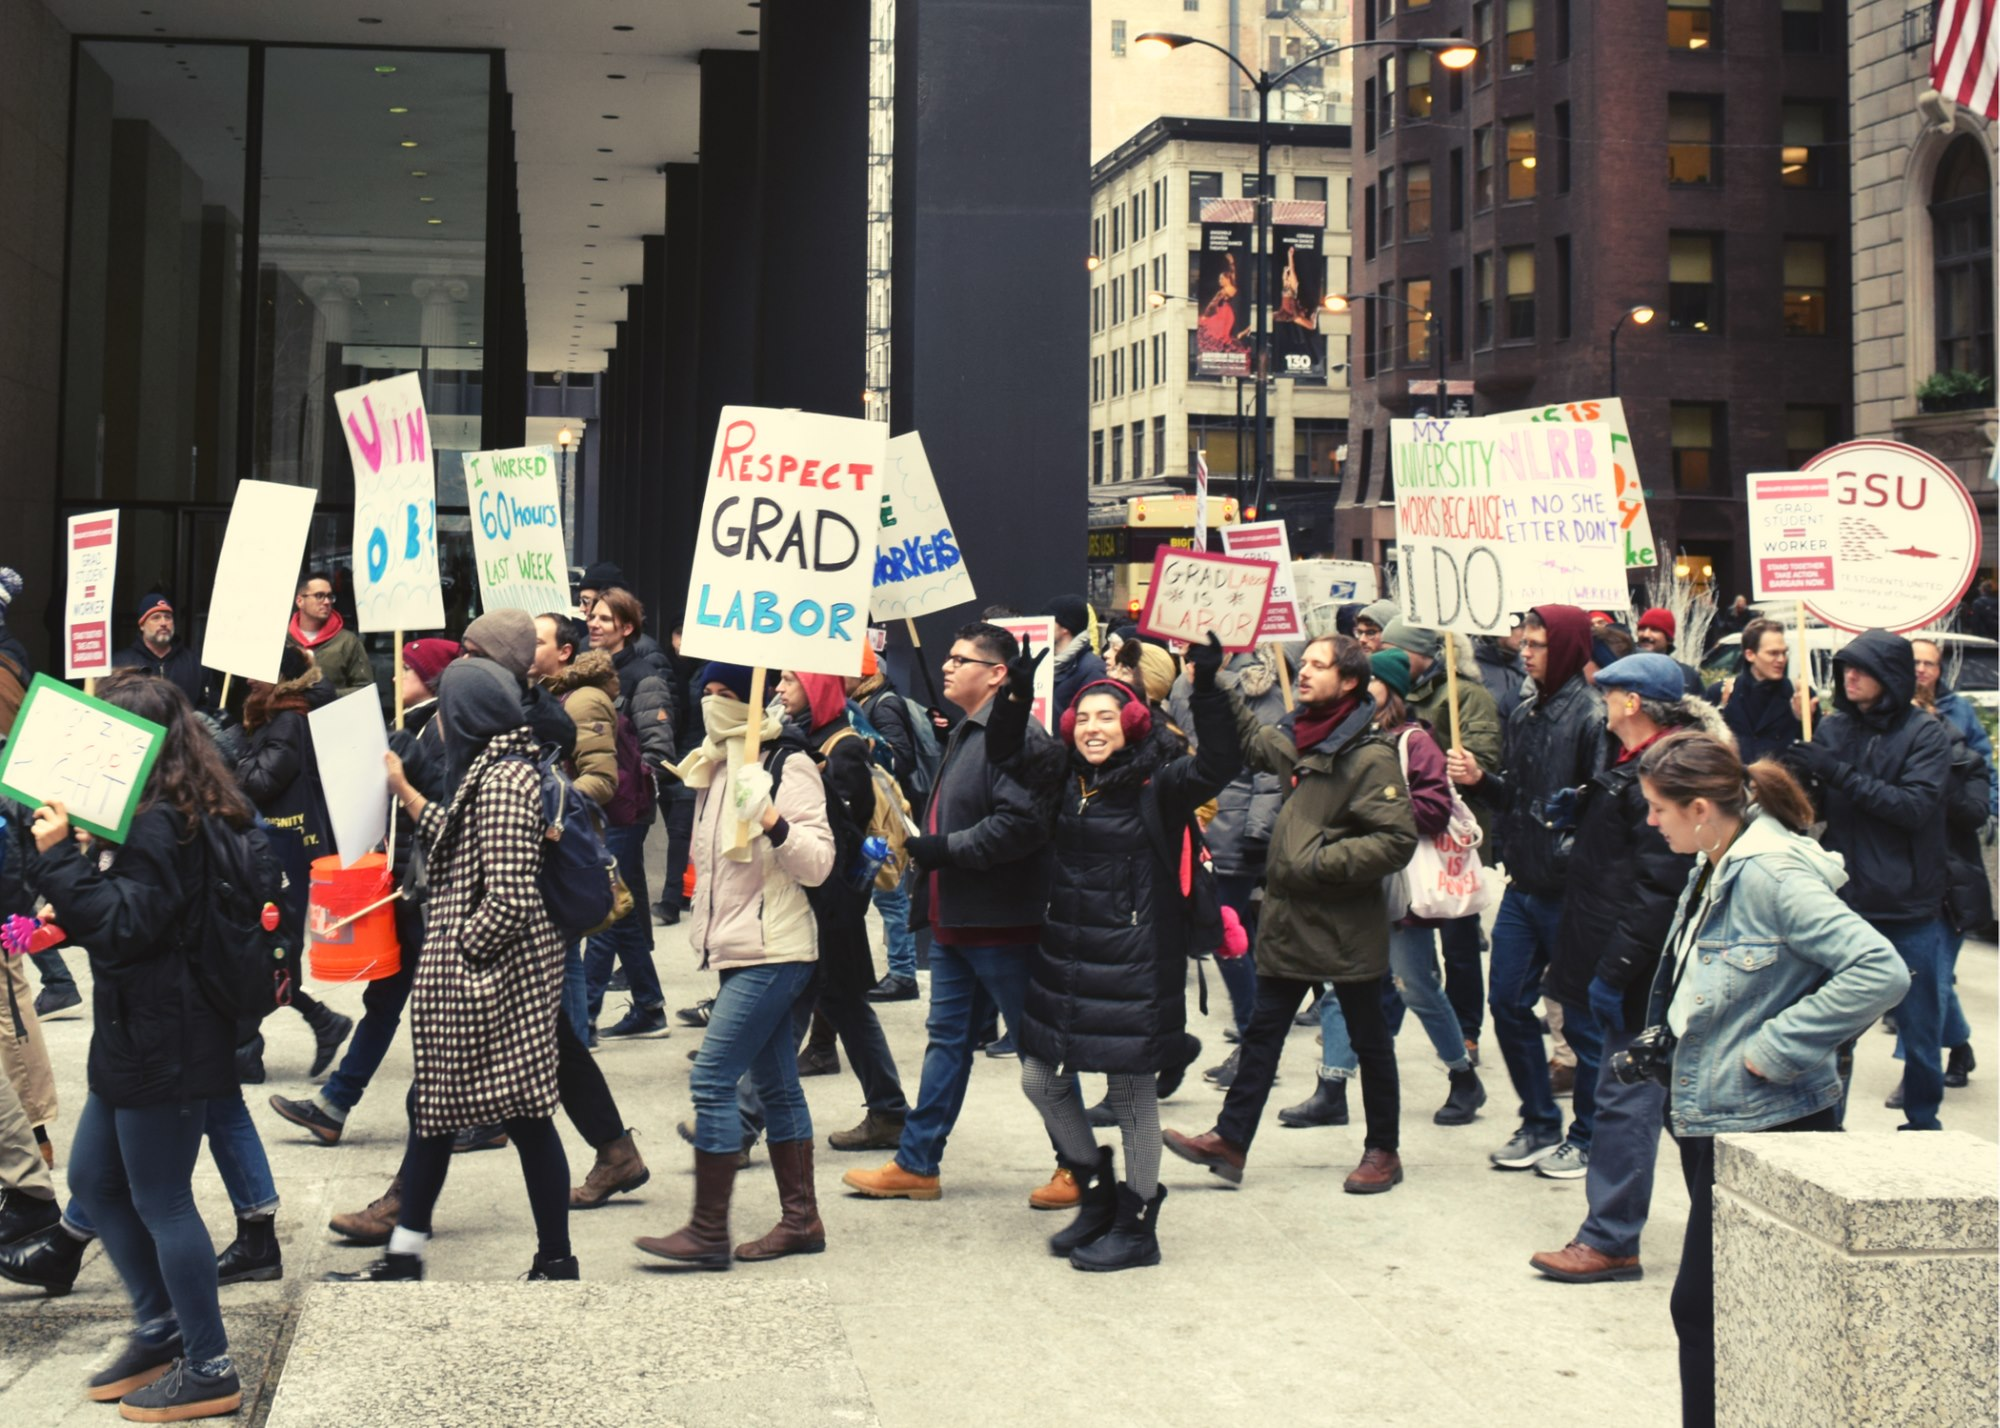 Graduate workers walk in a picket line in downtown Chicago